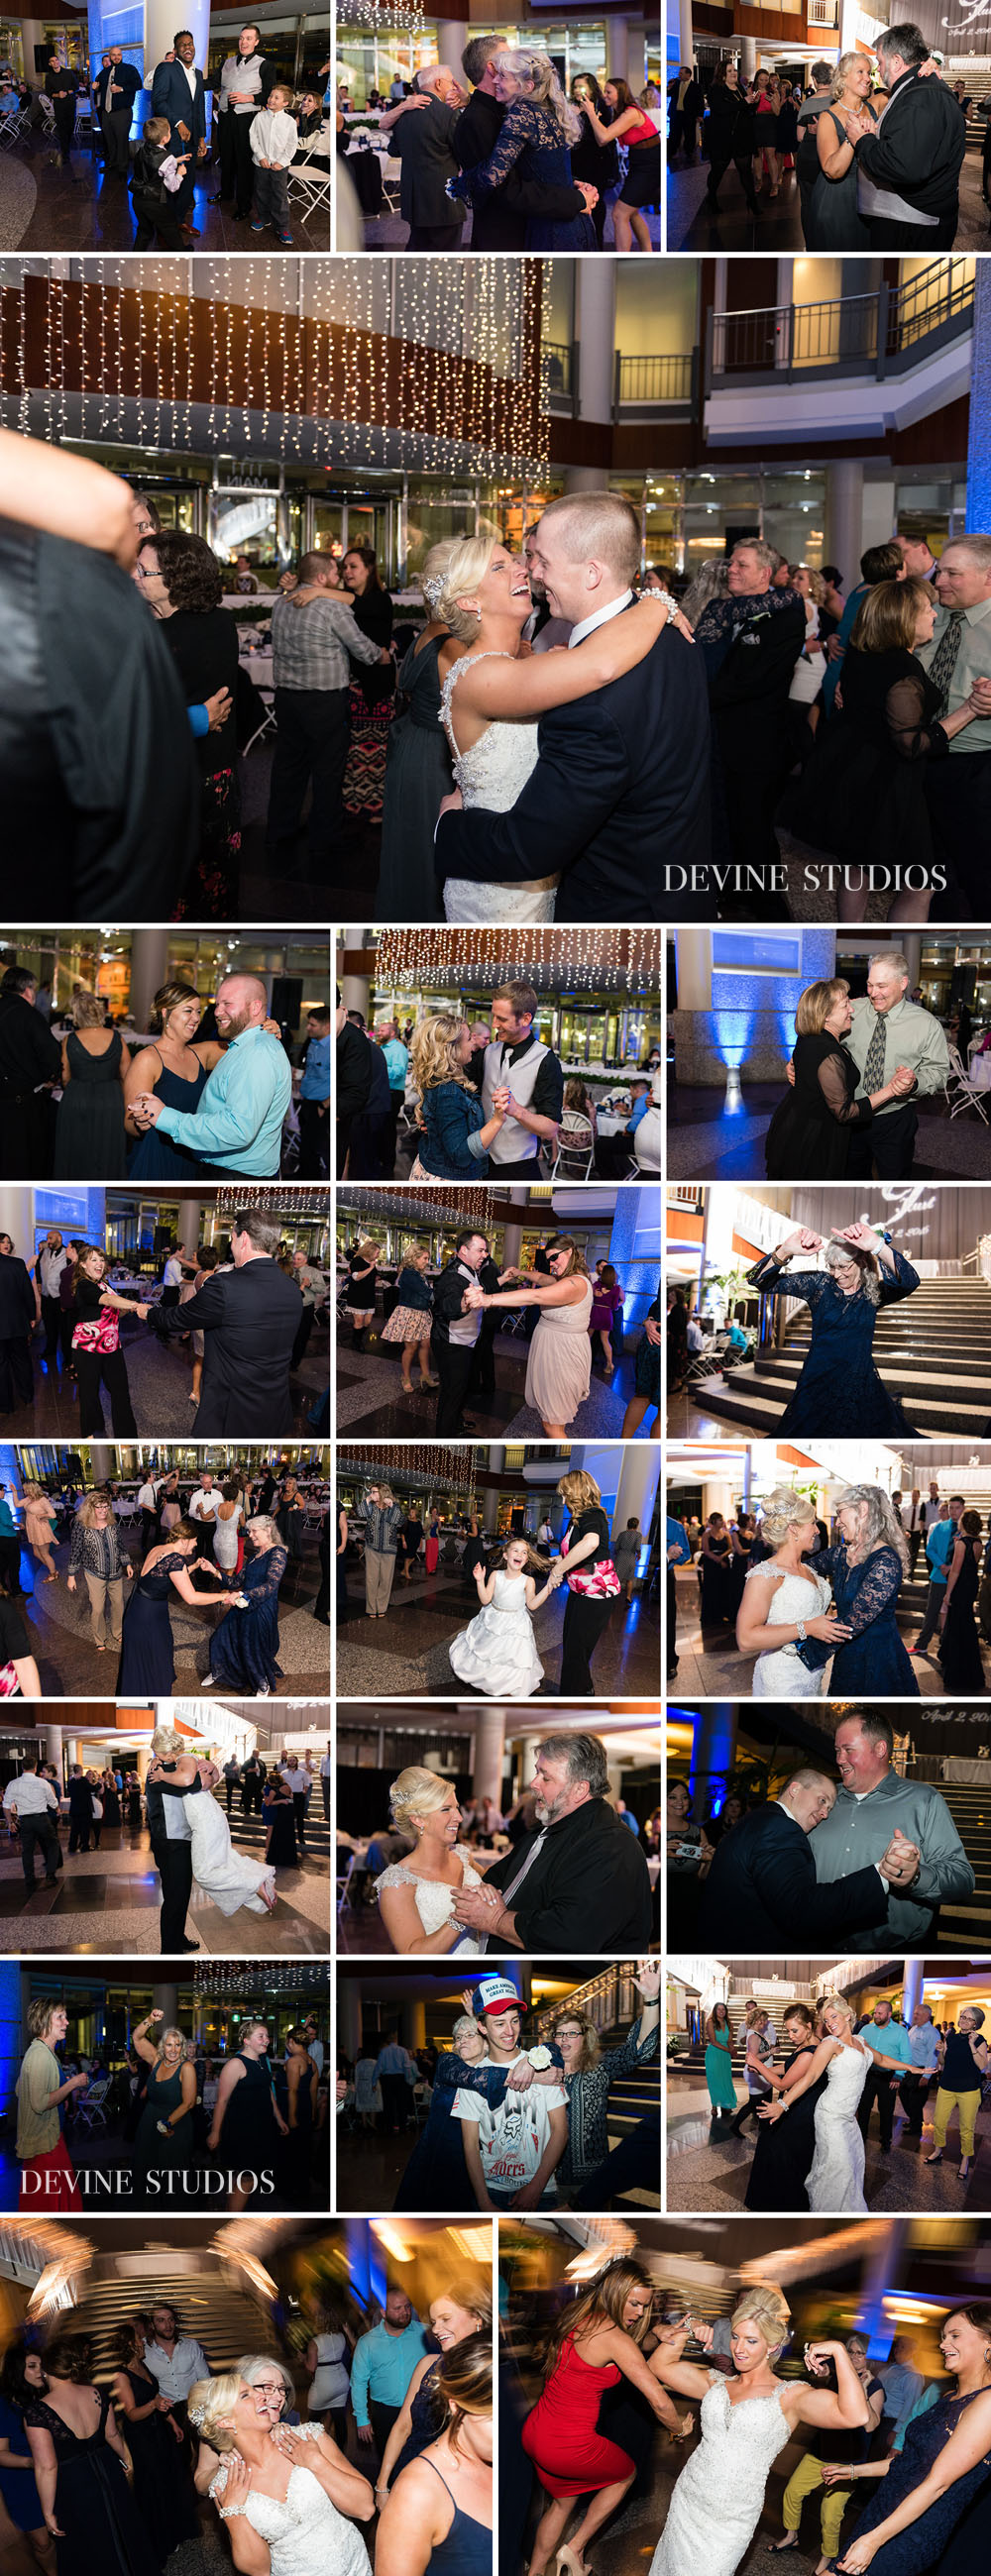 http://devinestudios.com/boudoir/wp-content/uploads/2016/05/10-839-post/Kansas-City-Wedding-Photography-Town-Pavilion-photojournalist-photographers20.jpg